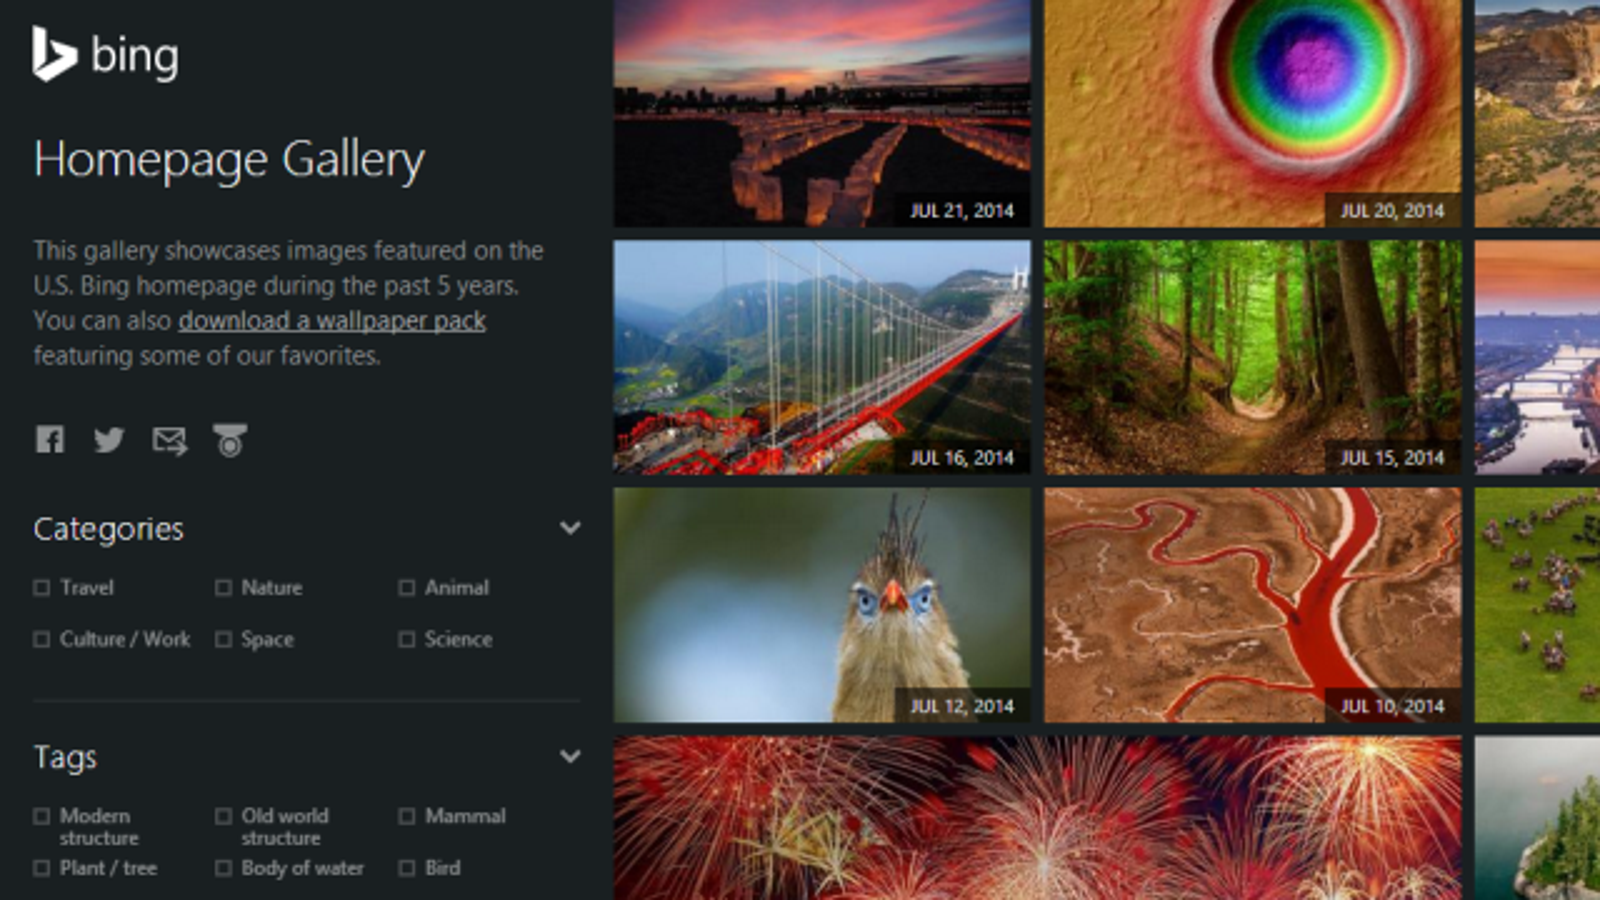 Browse And Download Any Bing Wallpaper At Official